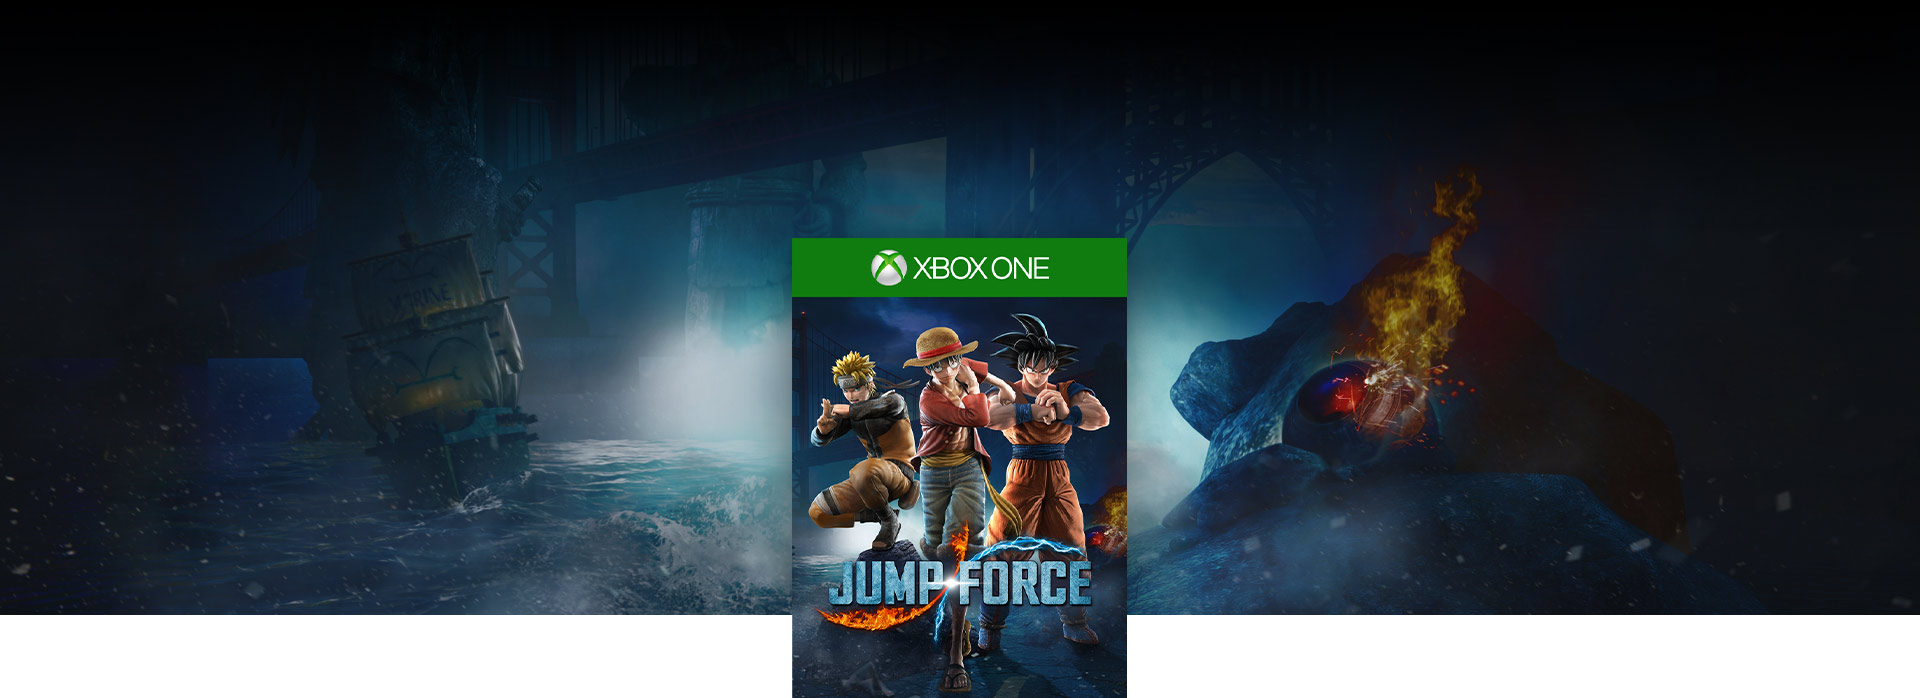 Jump Force-coverbillede med en mørk scene med ødelæggelse under Golden Gate Bridge